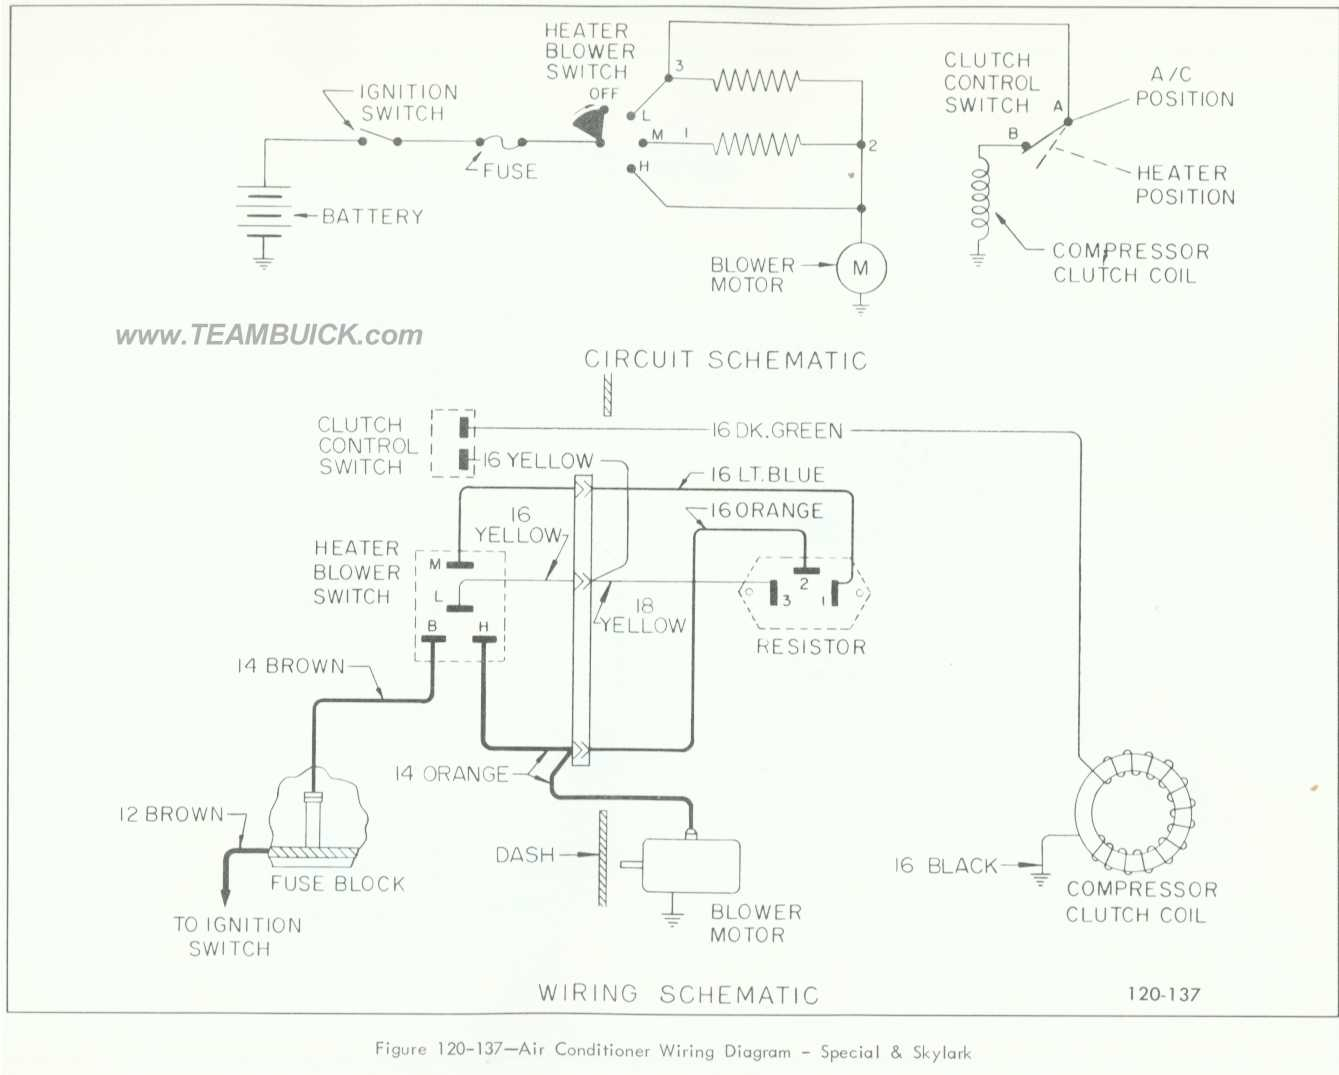 1966 Buick Special, Skylark, Air Conditioner Wiring Diagram